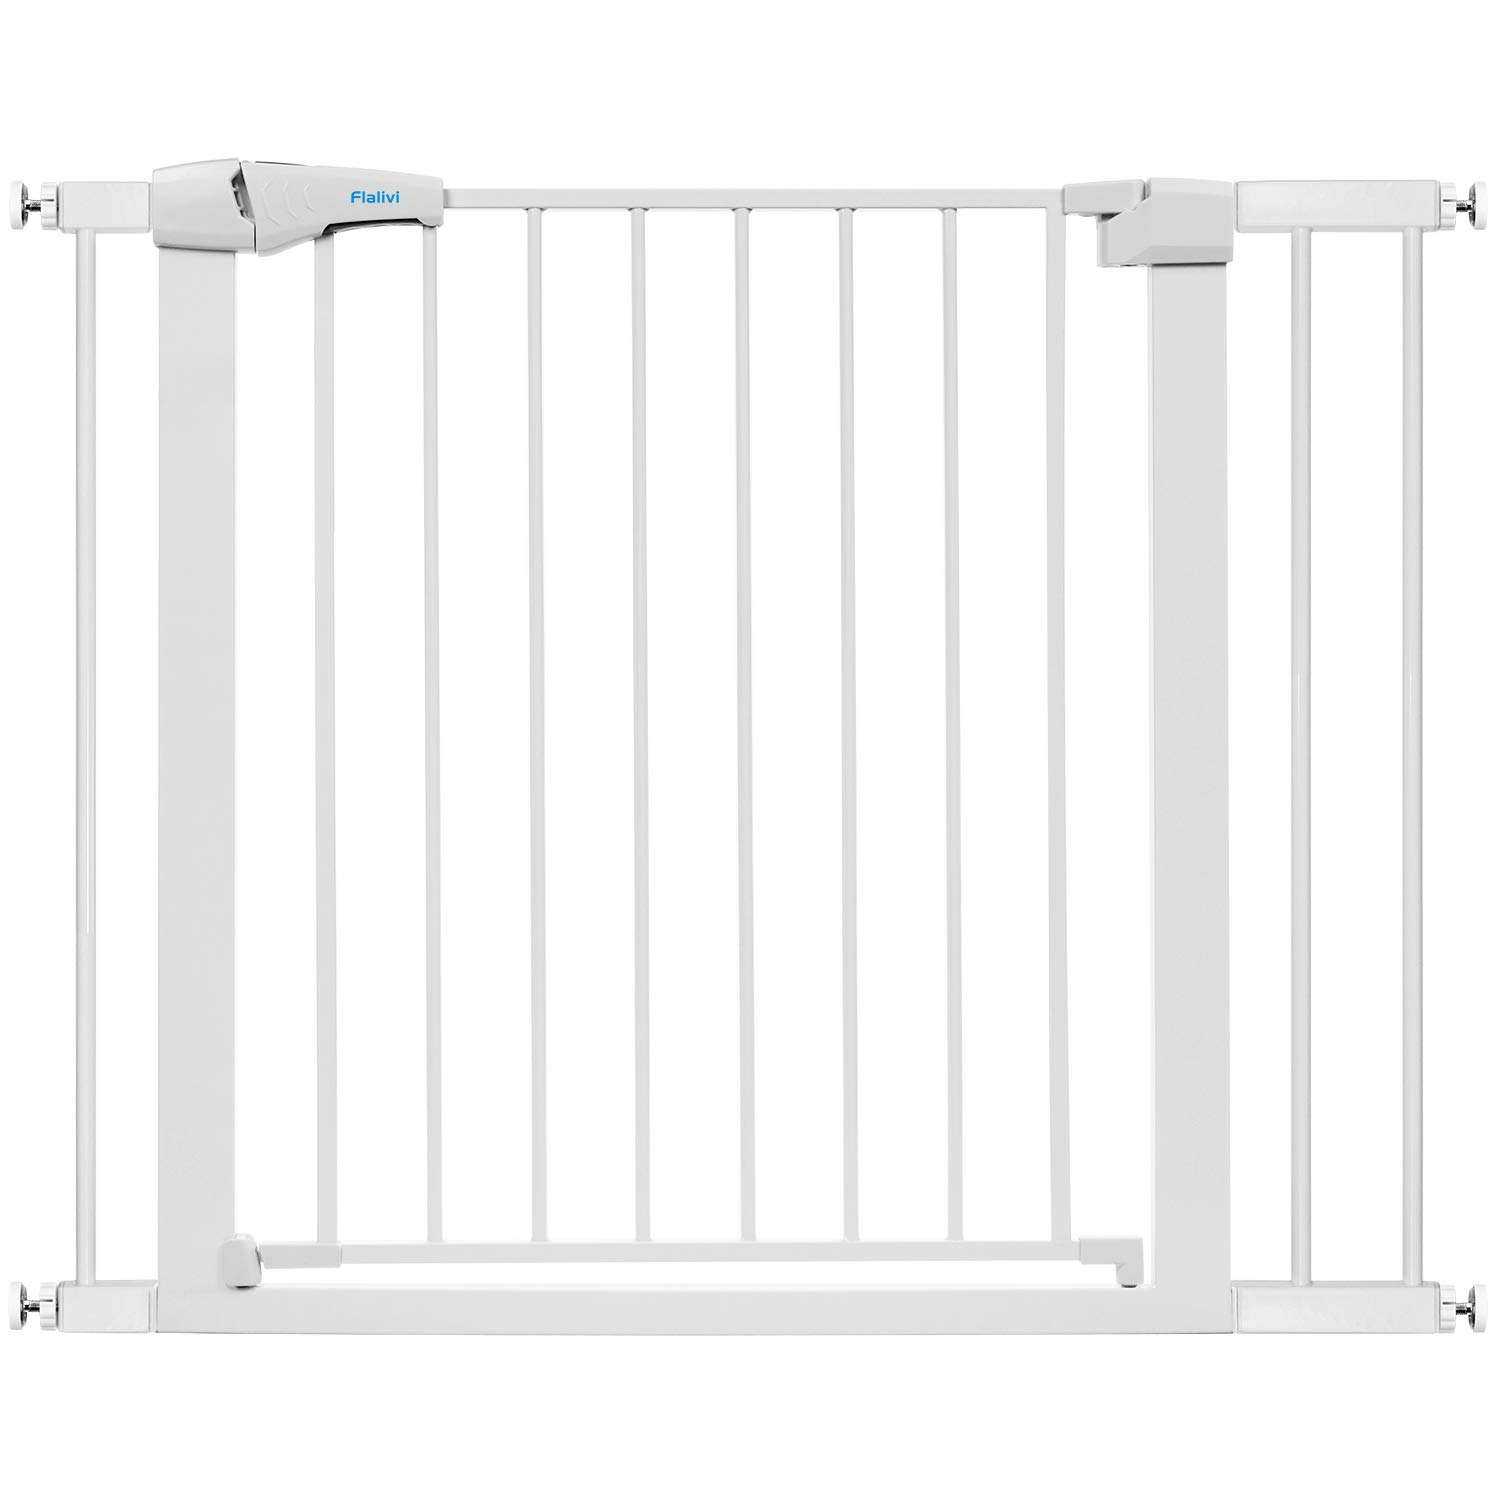 Flalivi 29.5-40.6 Inch Auto Close Safety Baby Gate, Extra Wide Child Gate, Easy Walk Thru Durability Pressure Mount Baby Gate for Doorways, Stairs, House. Include 4 Wall Cups, 2.75 and 5.5 Extension